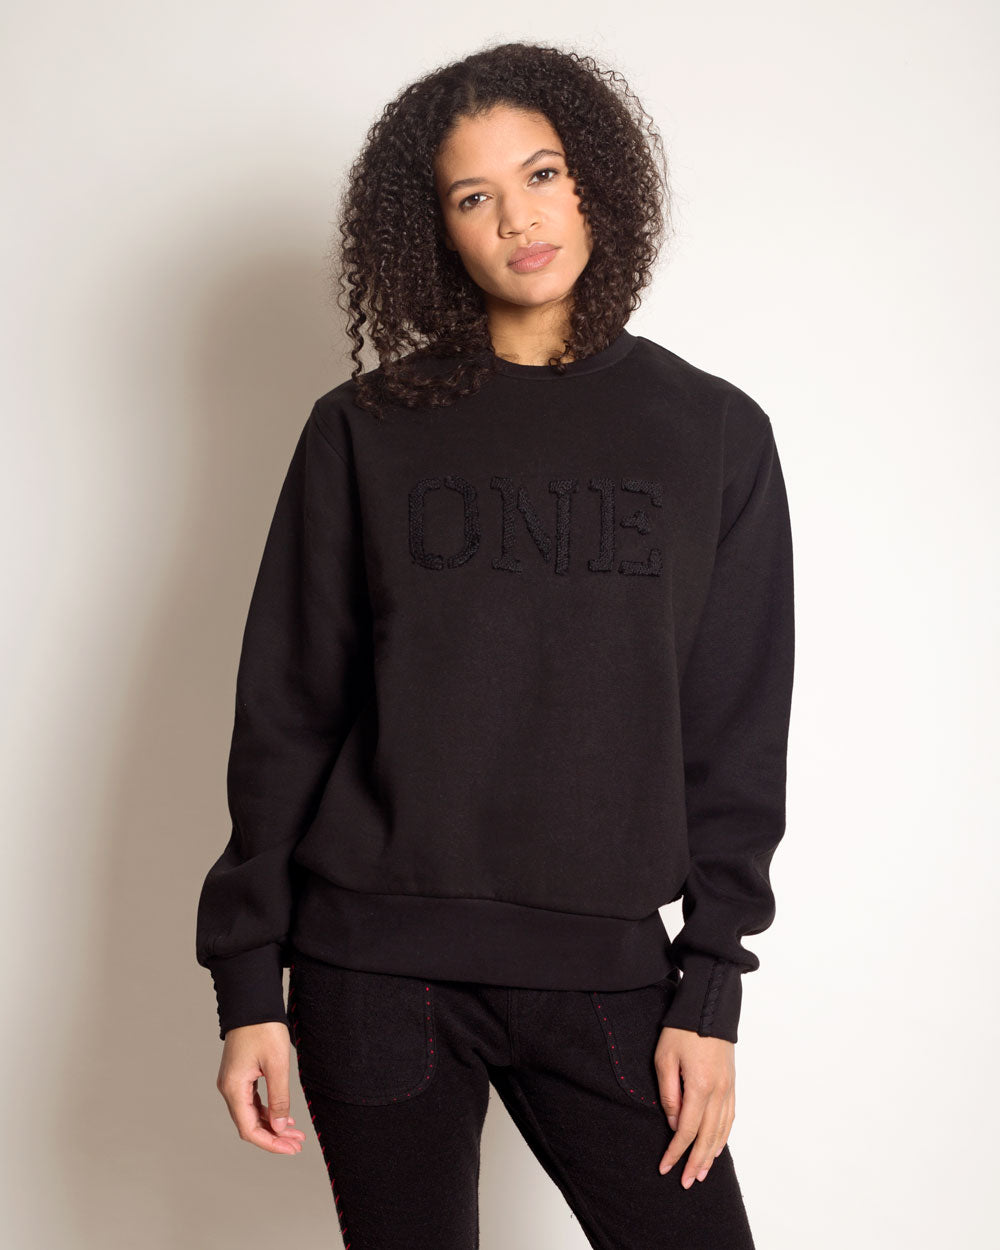 SWEATSHIRT one